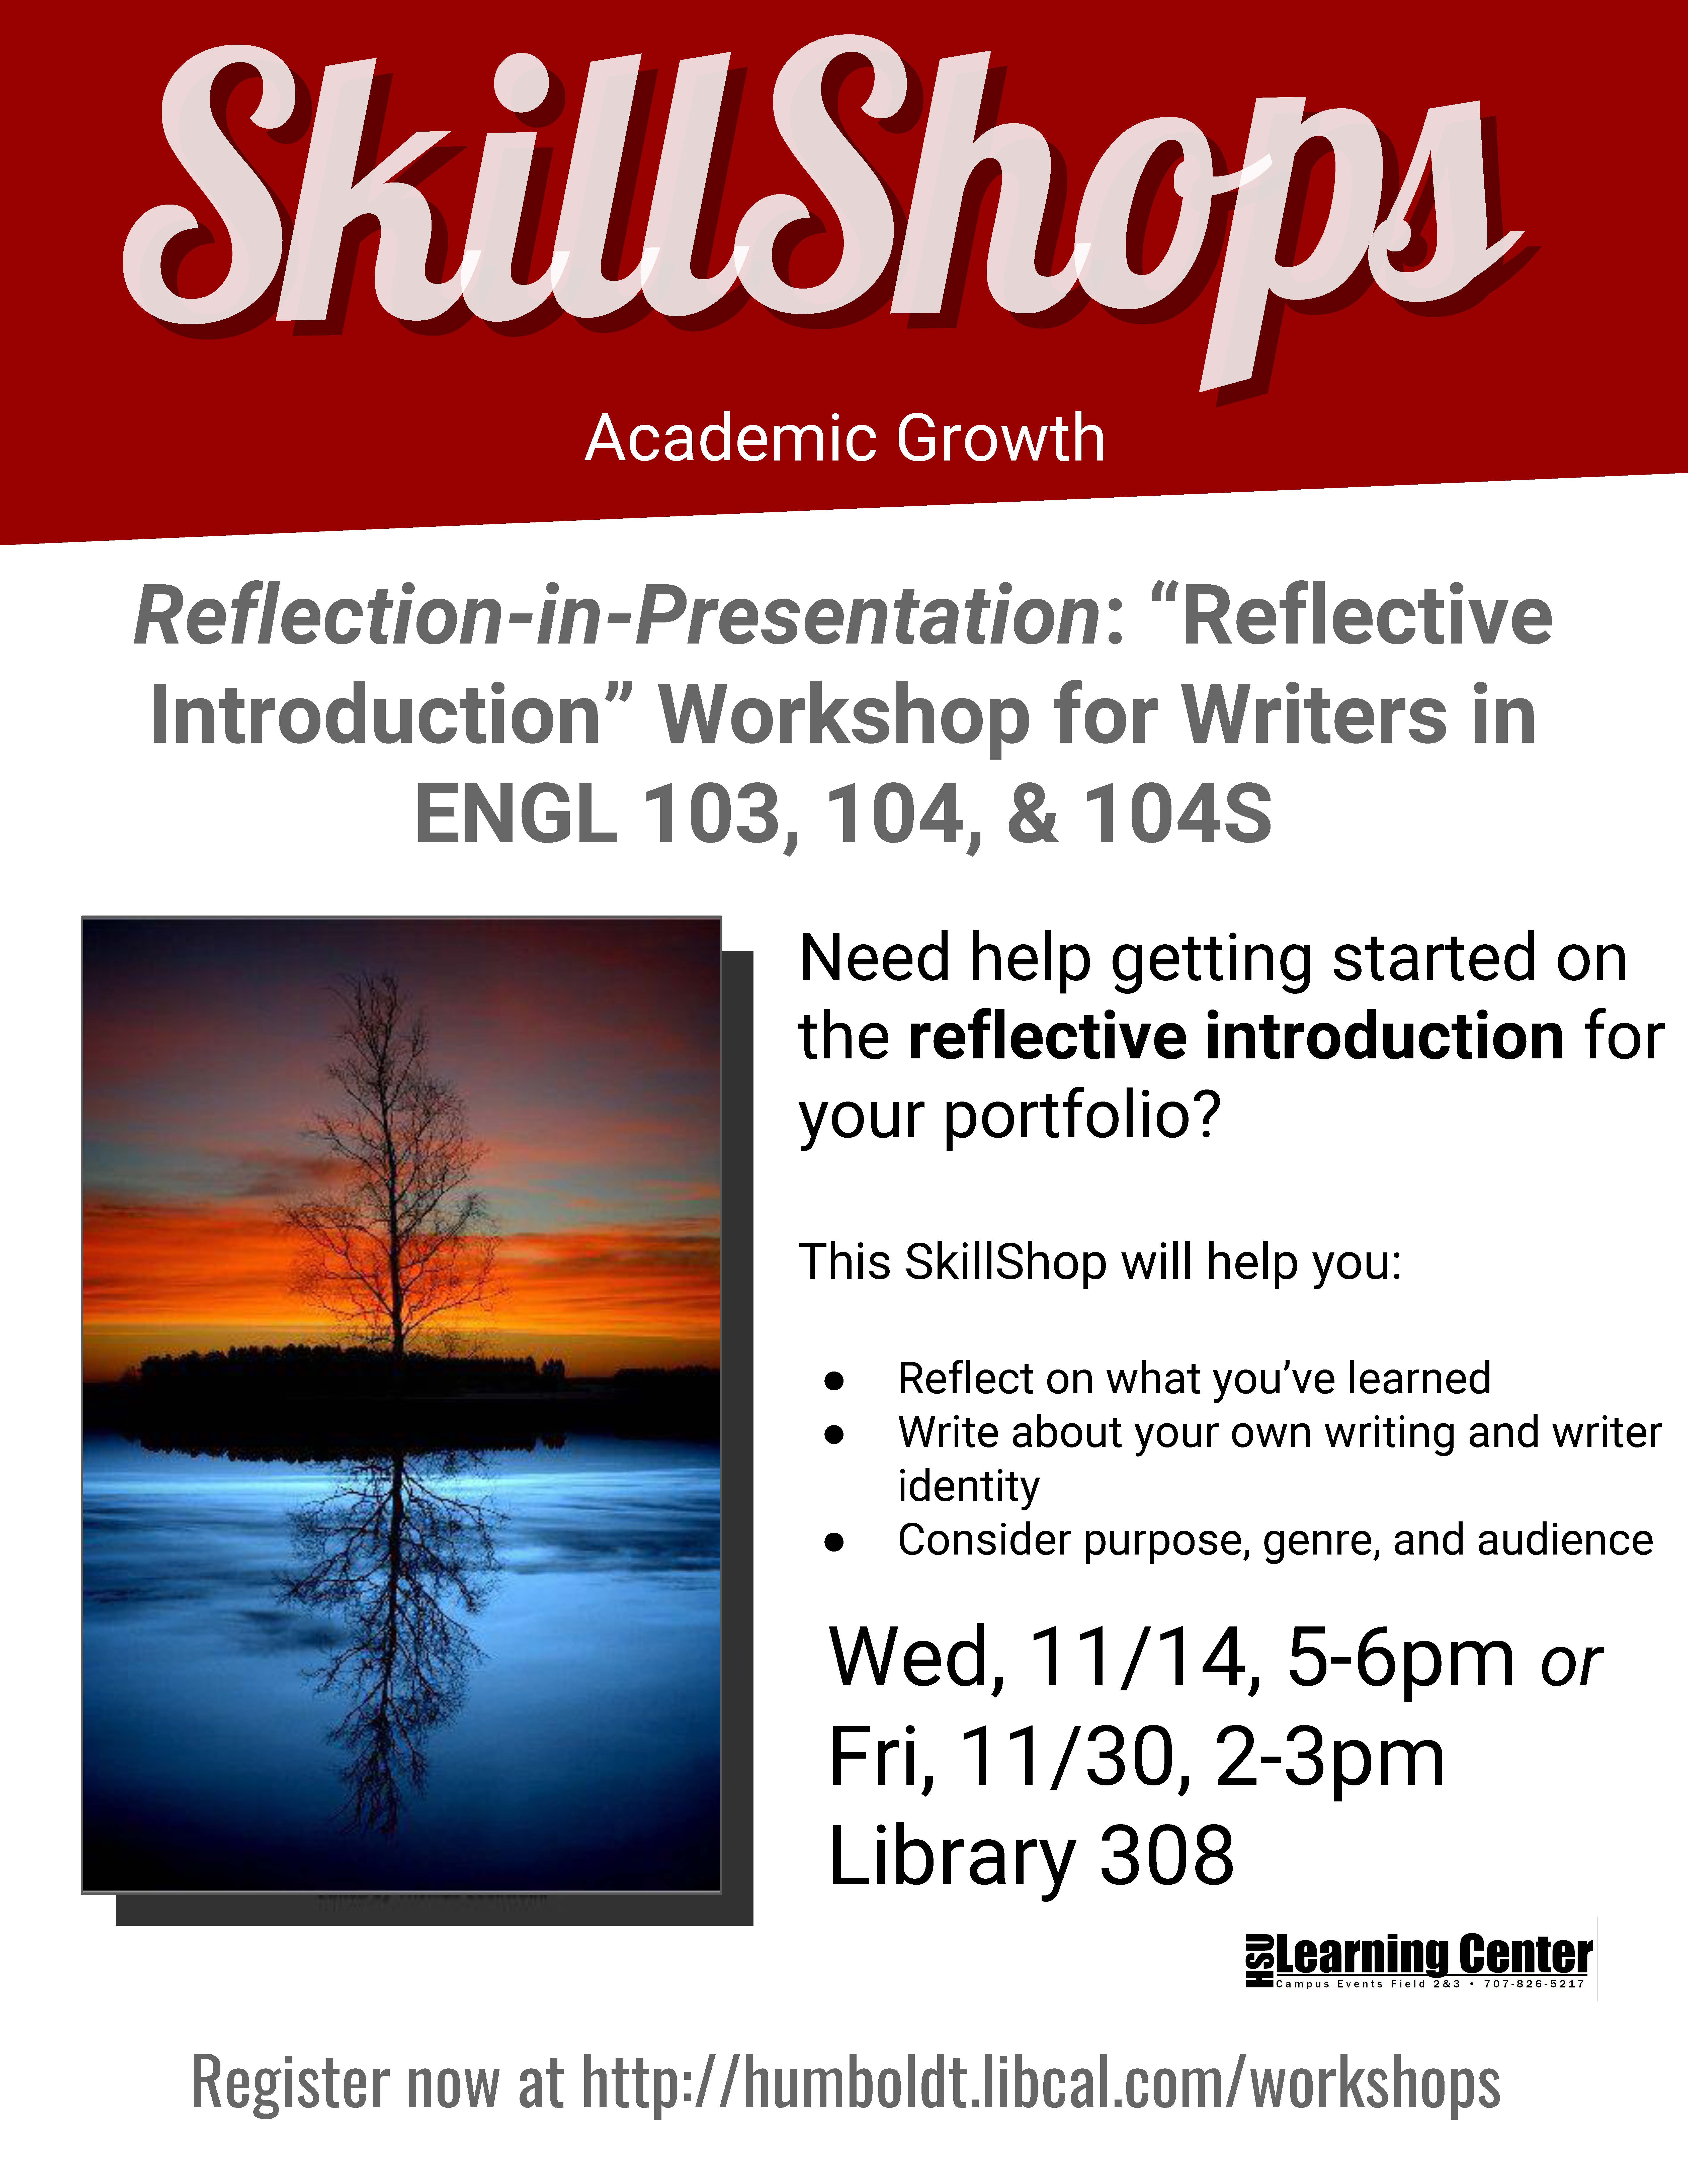 Reflective Introduction for Writers in ENGL 103, 104, & 104S